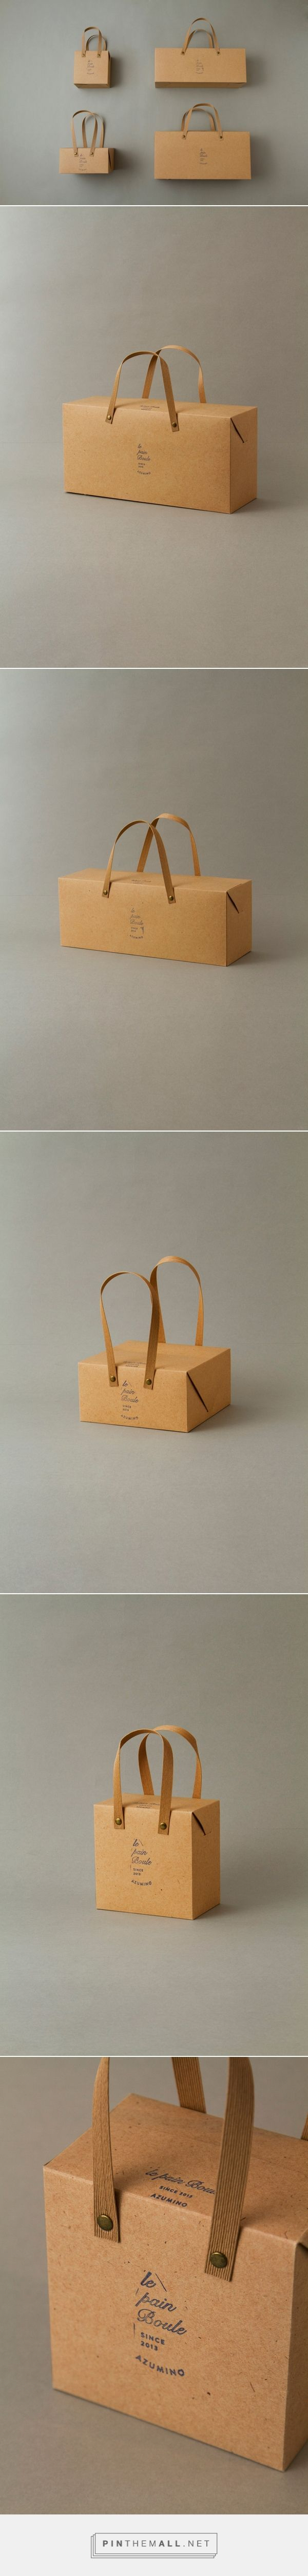 Artless Inc. le pain boule new gift box #packaging curated by Packaging Diva PD created via